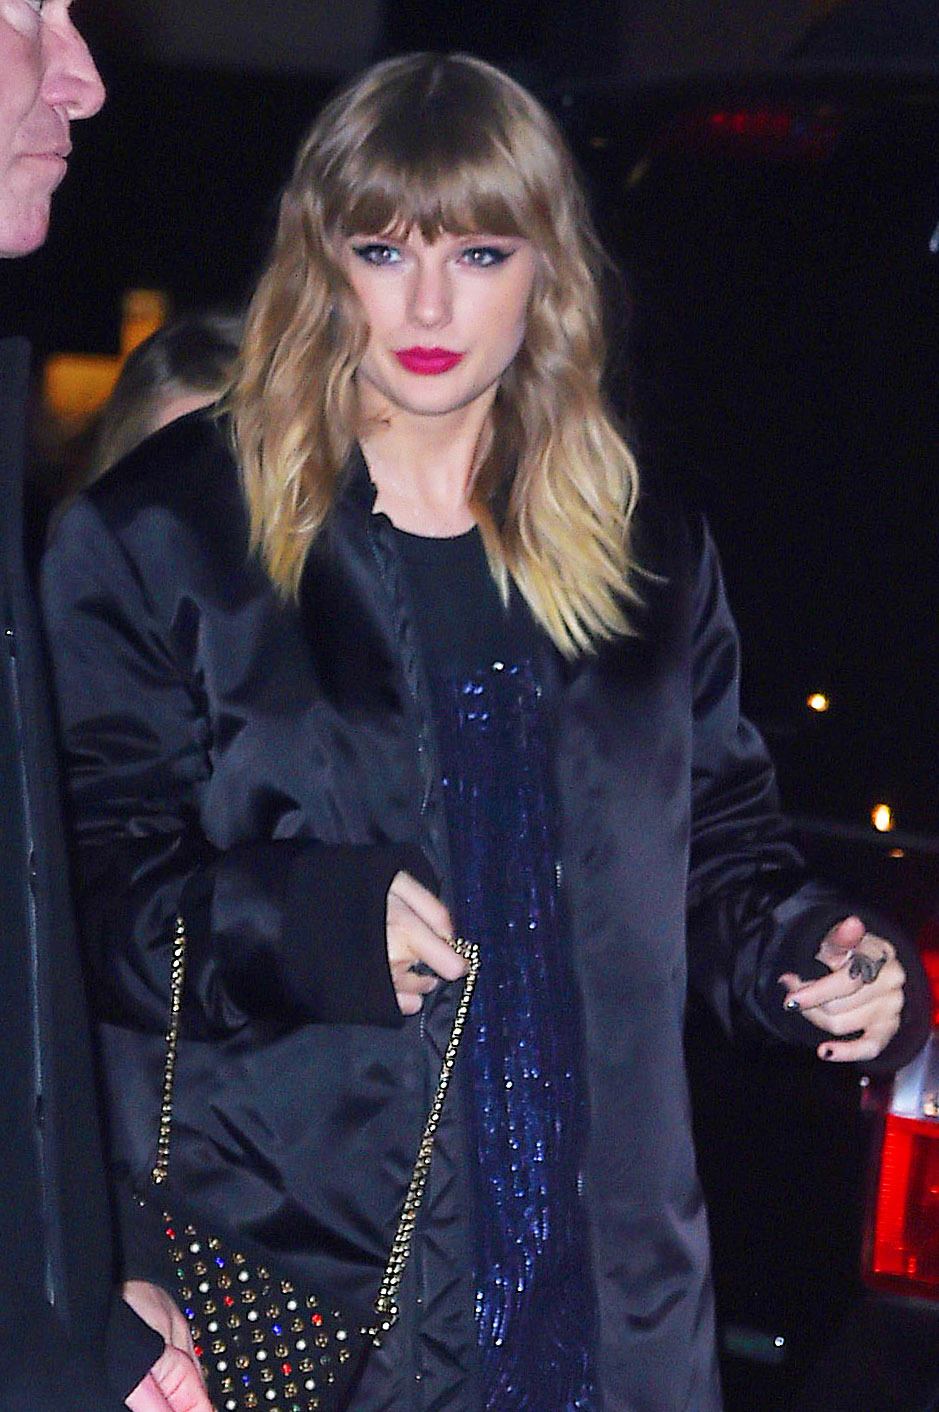 """Taylor Swift arrives to the """"Saturday Night Live"""" after party in New York City on Nov. 11, 2017."""